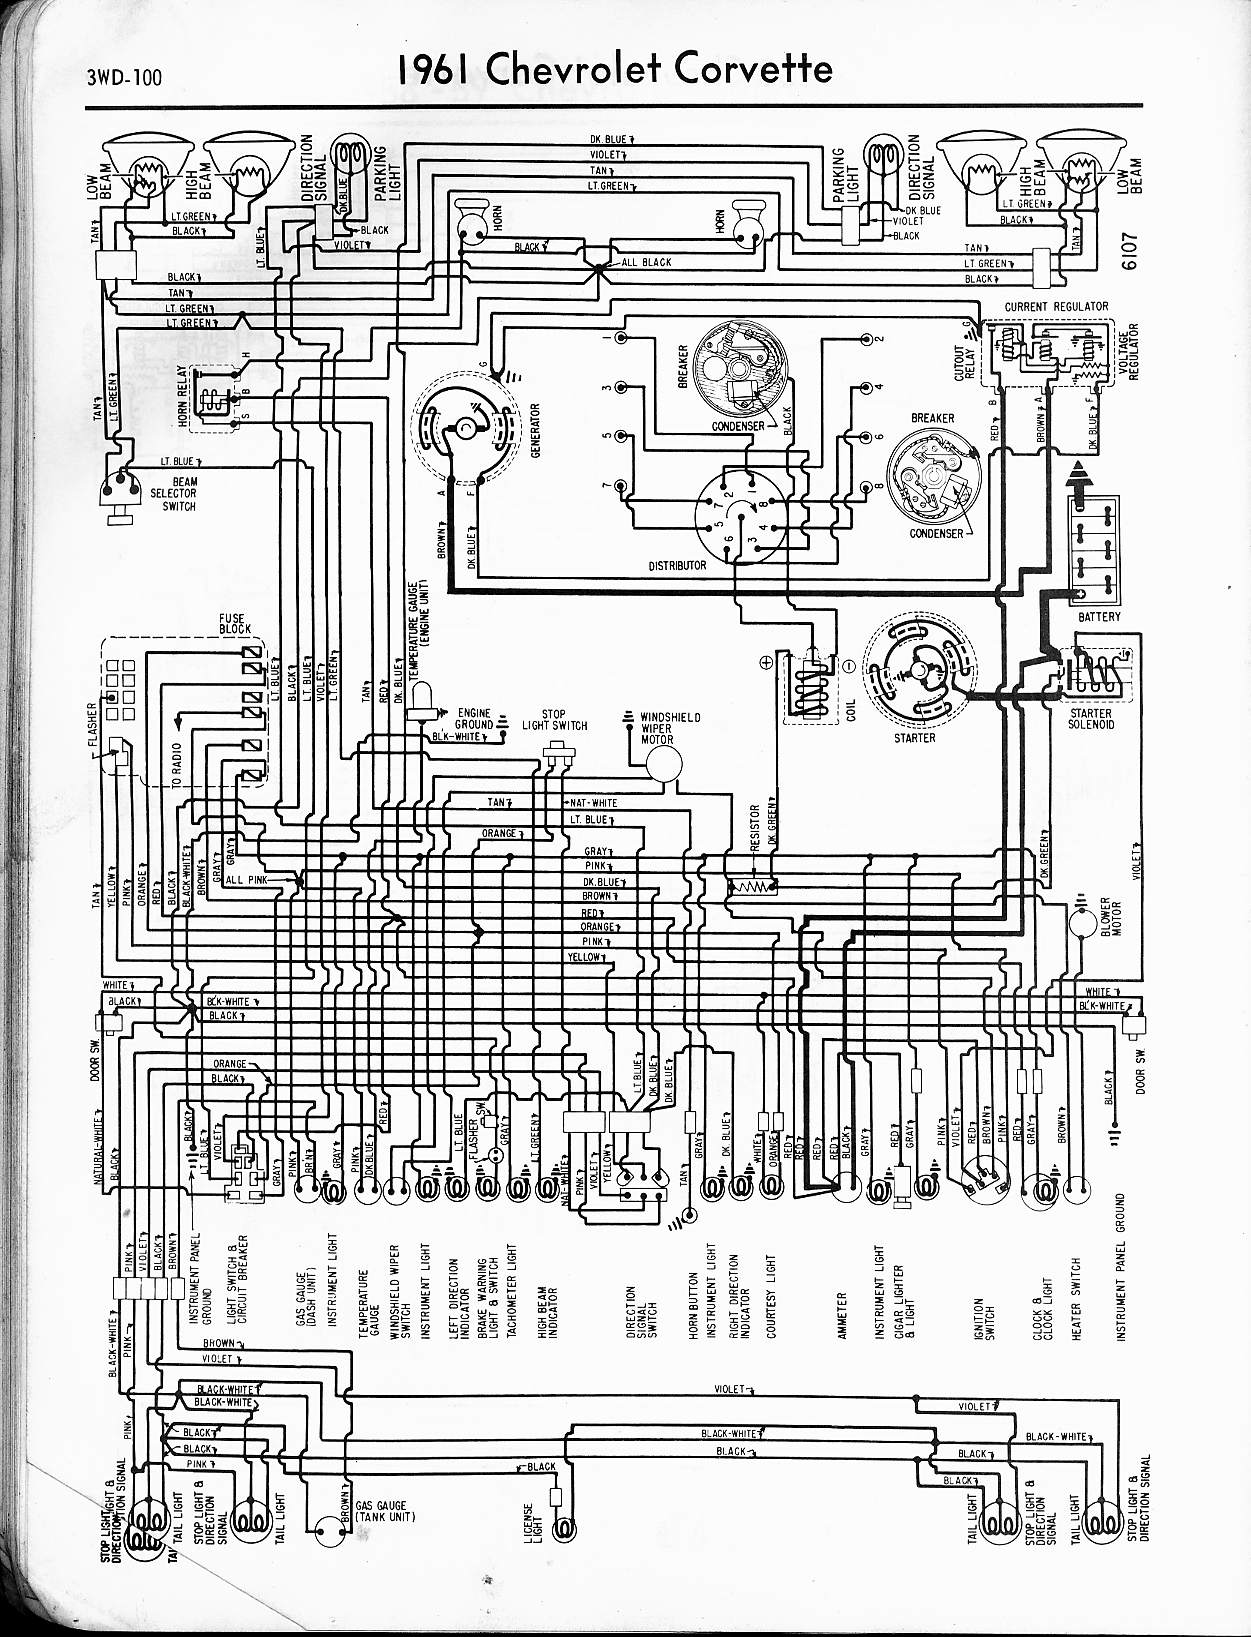 62 chevy corvette wiring diagram expert schematics diagram rh  atcobennettrecoveries com 1979 corvette fuse box diagram 1979 corvette fuse  box diagram